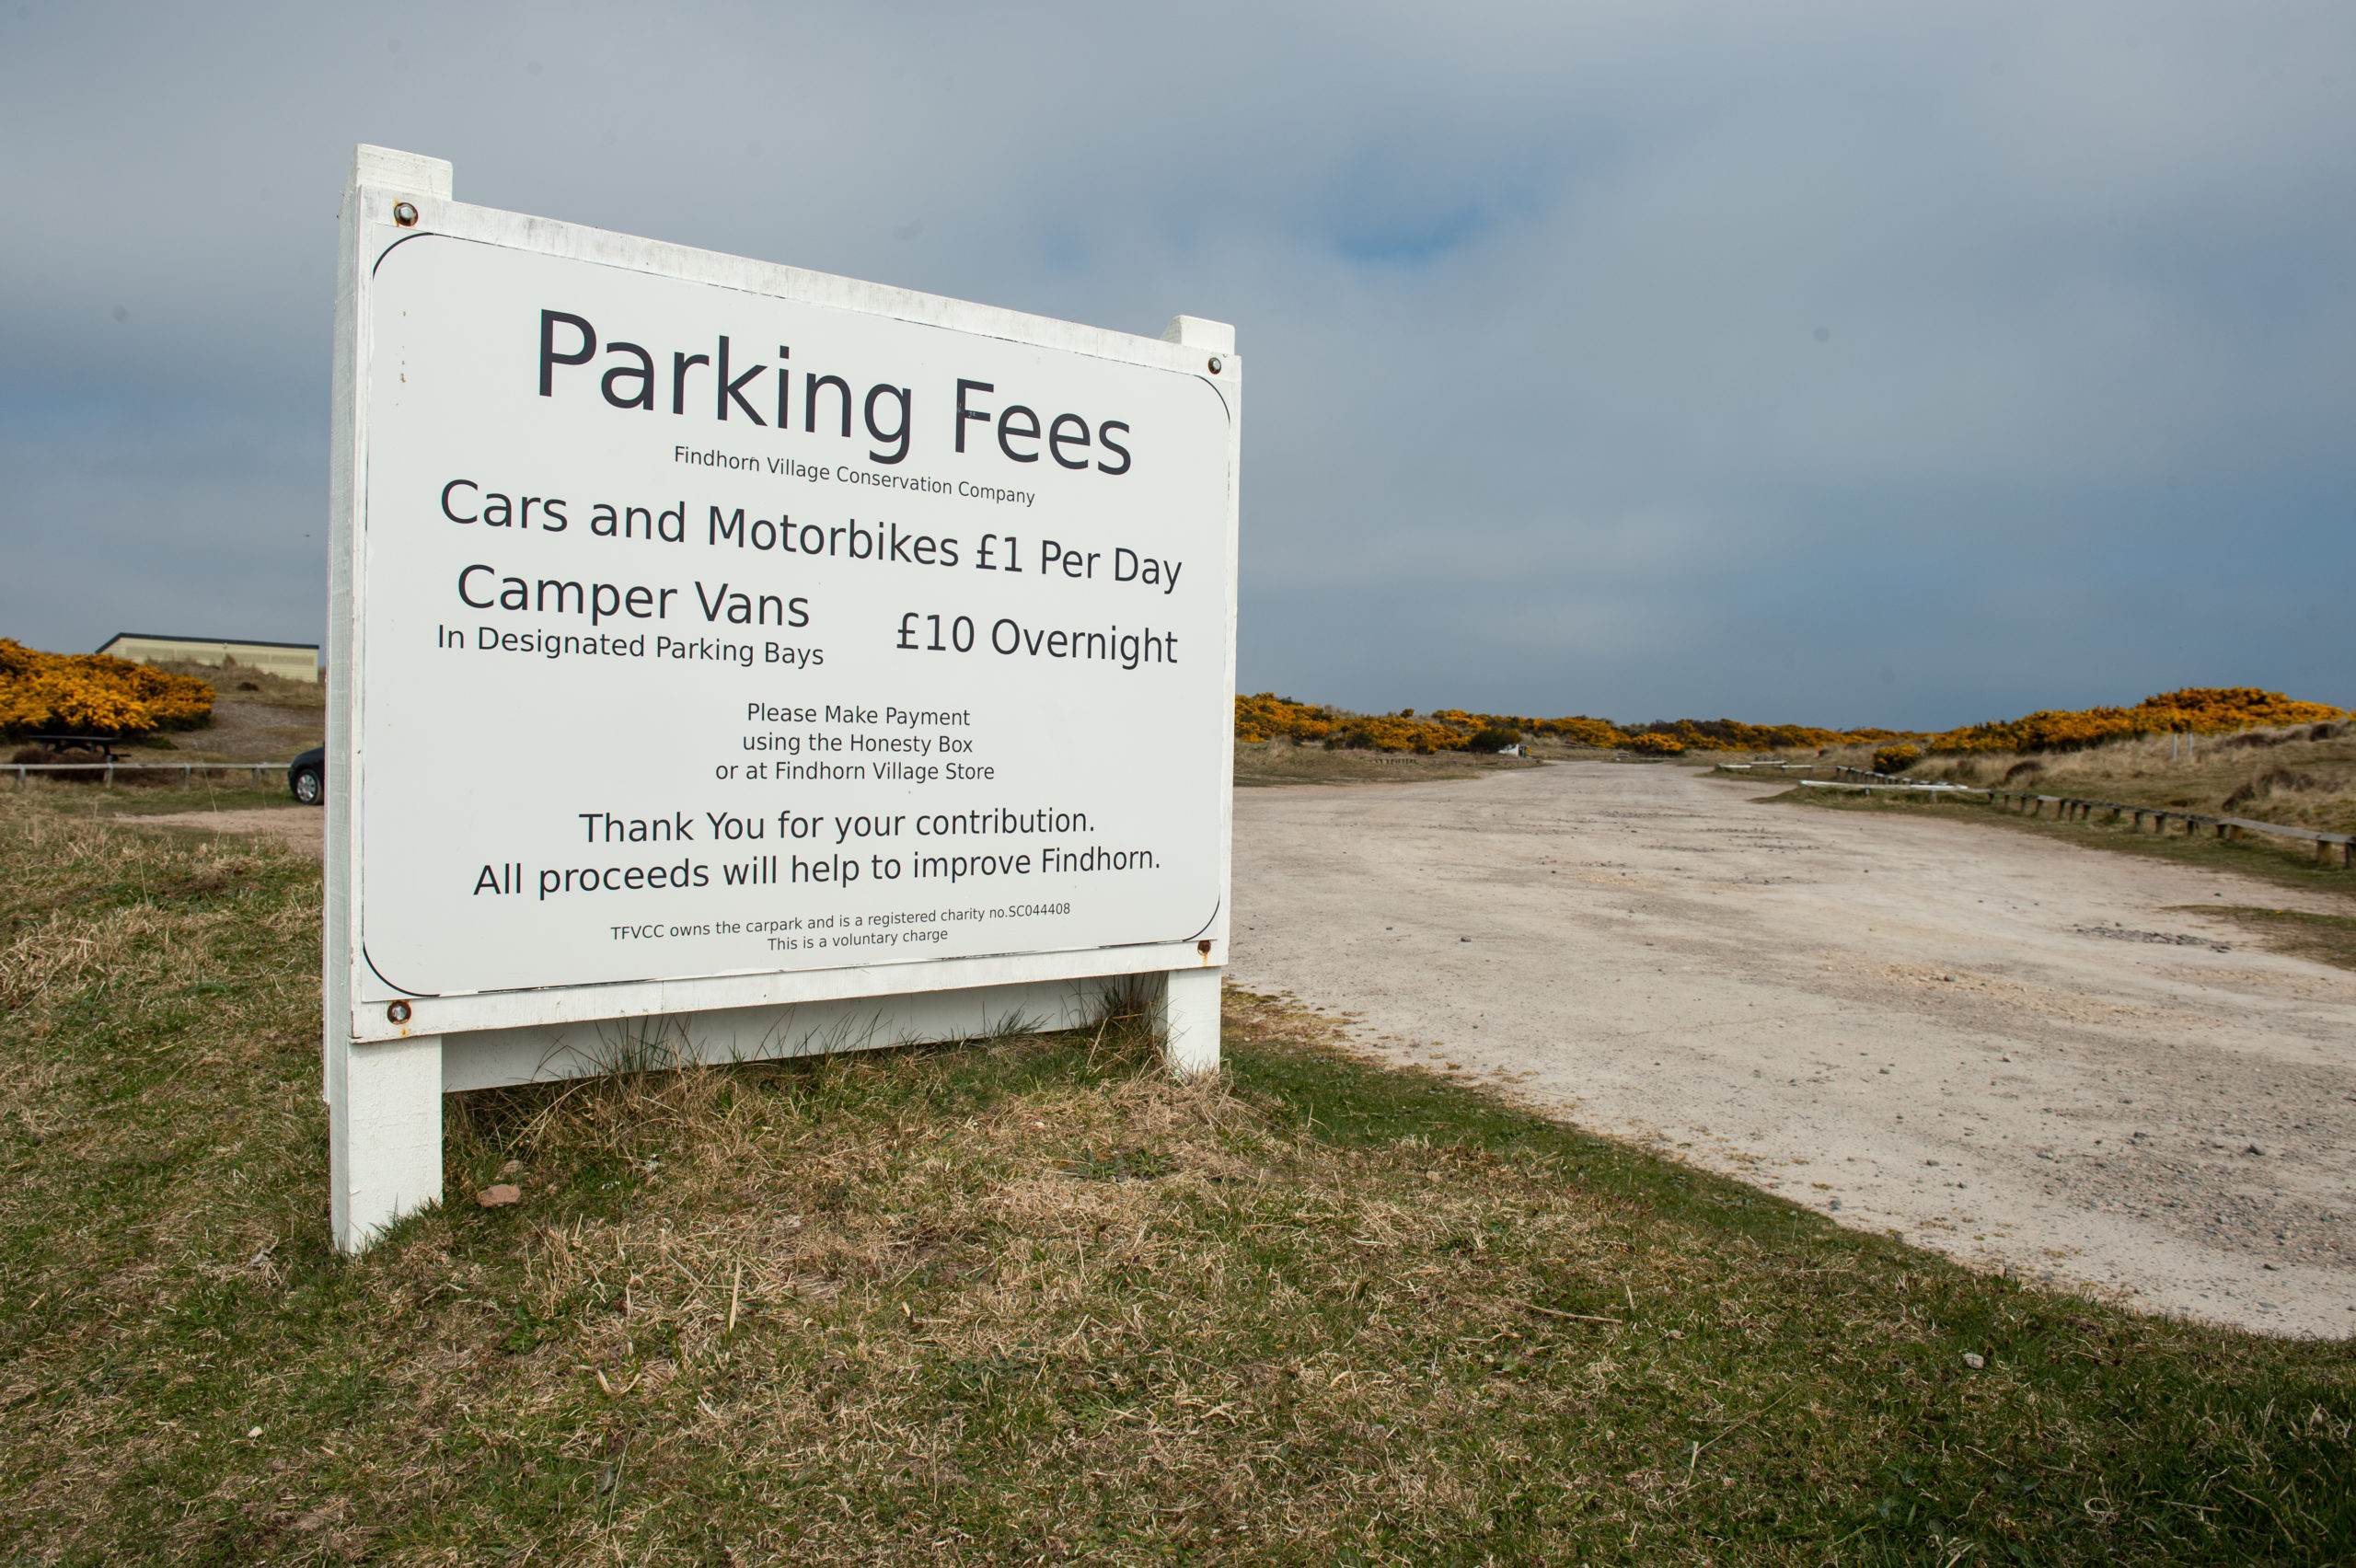 Findhorn Village Conservation Company has been running voluntary parking charges at the beach since 2018.